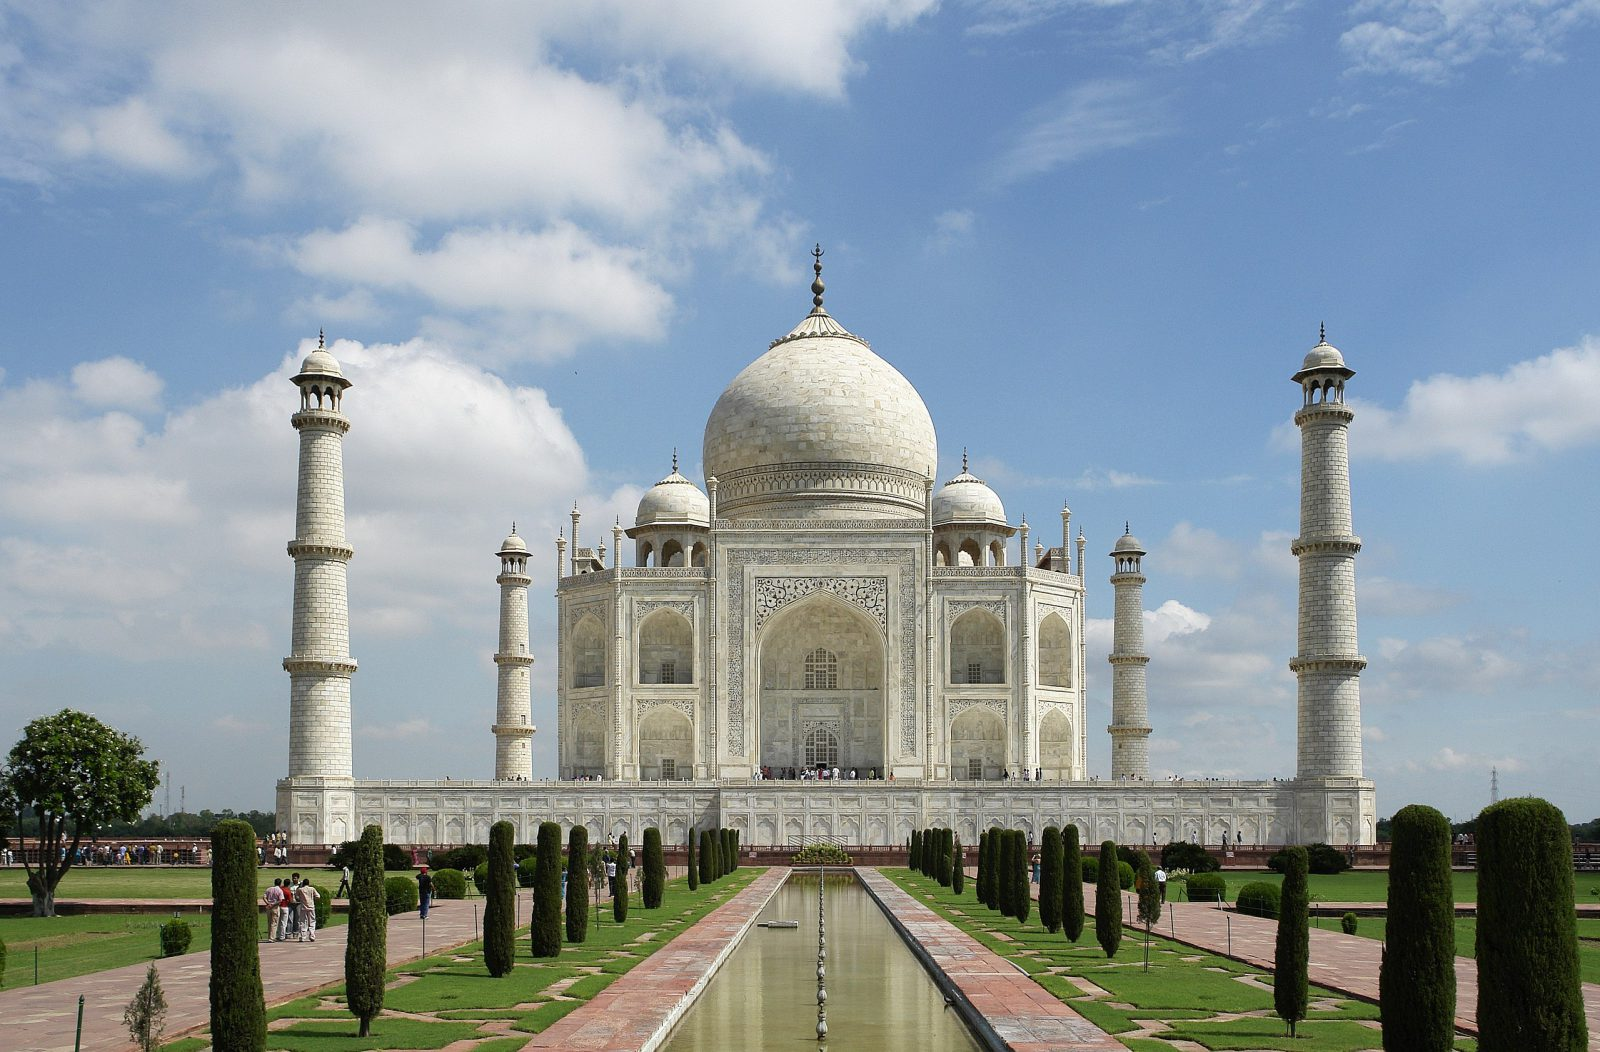 Flight Deal Round Trip From Chicago Area to Delhi #chicago #delhi #1week